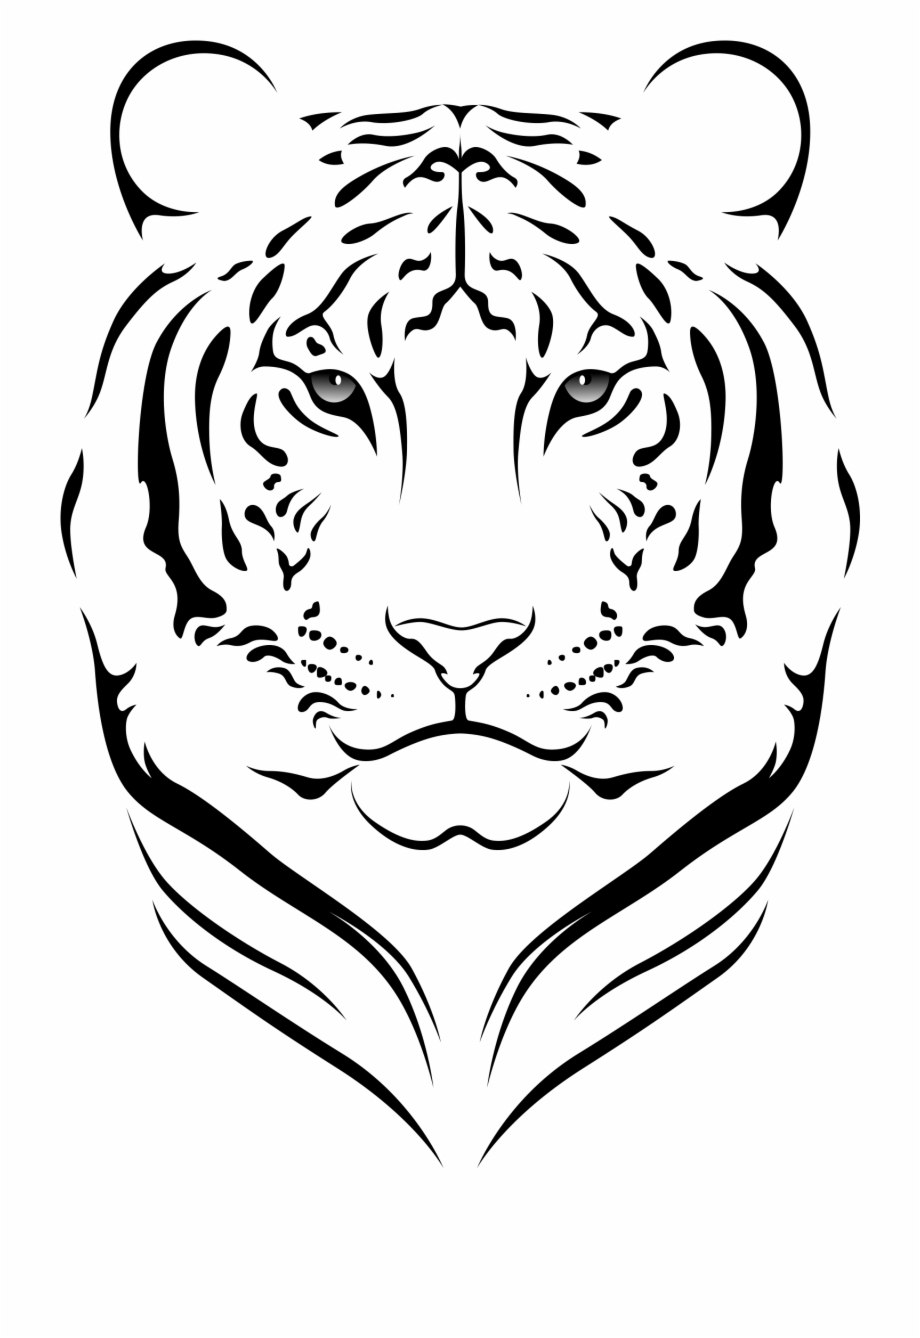 Tiger Black And White Clipart.